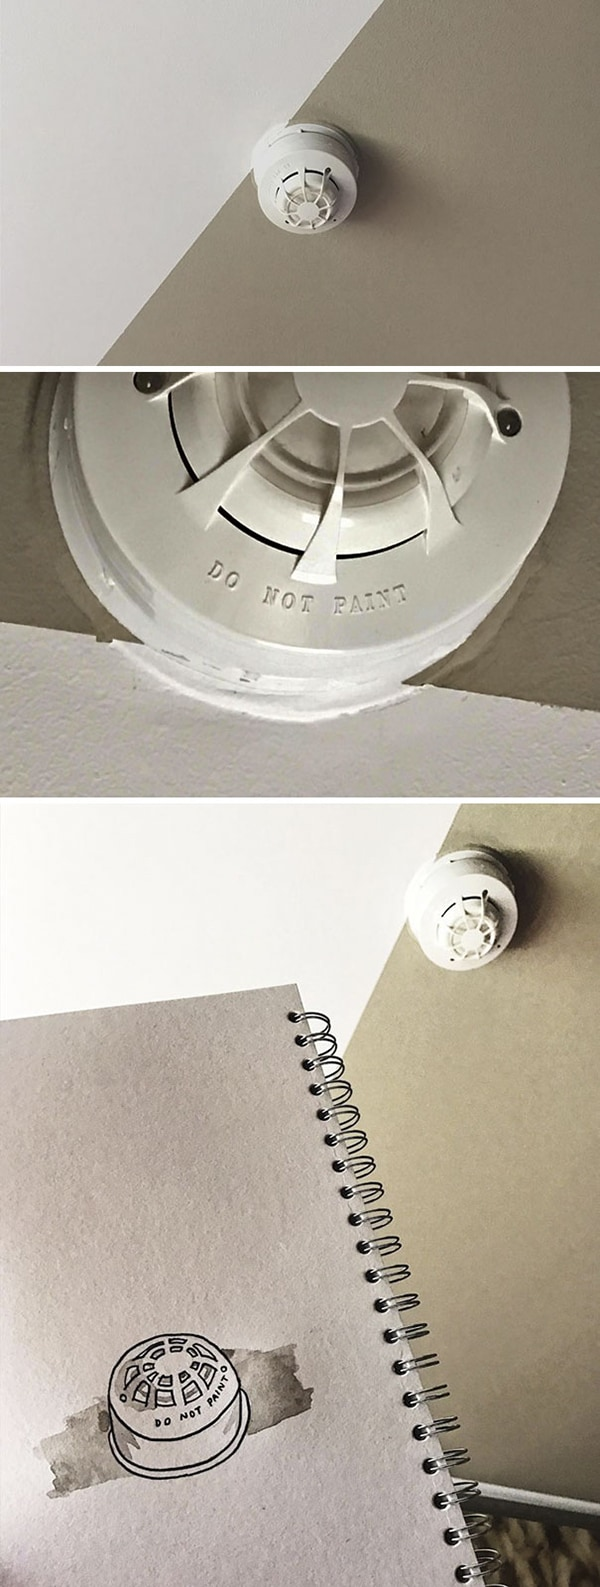 First World Anarchists do not paint smoke alarm